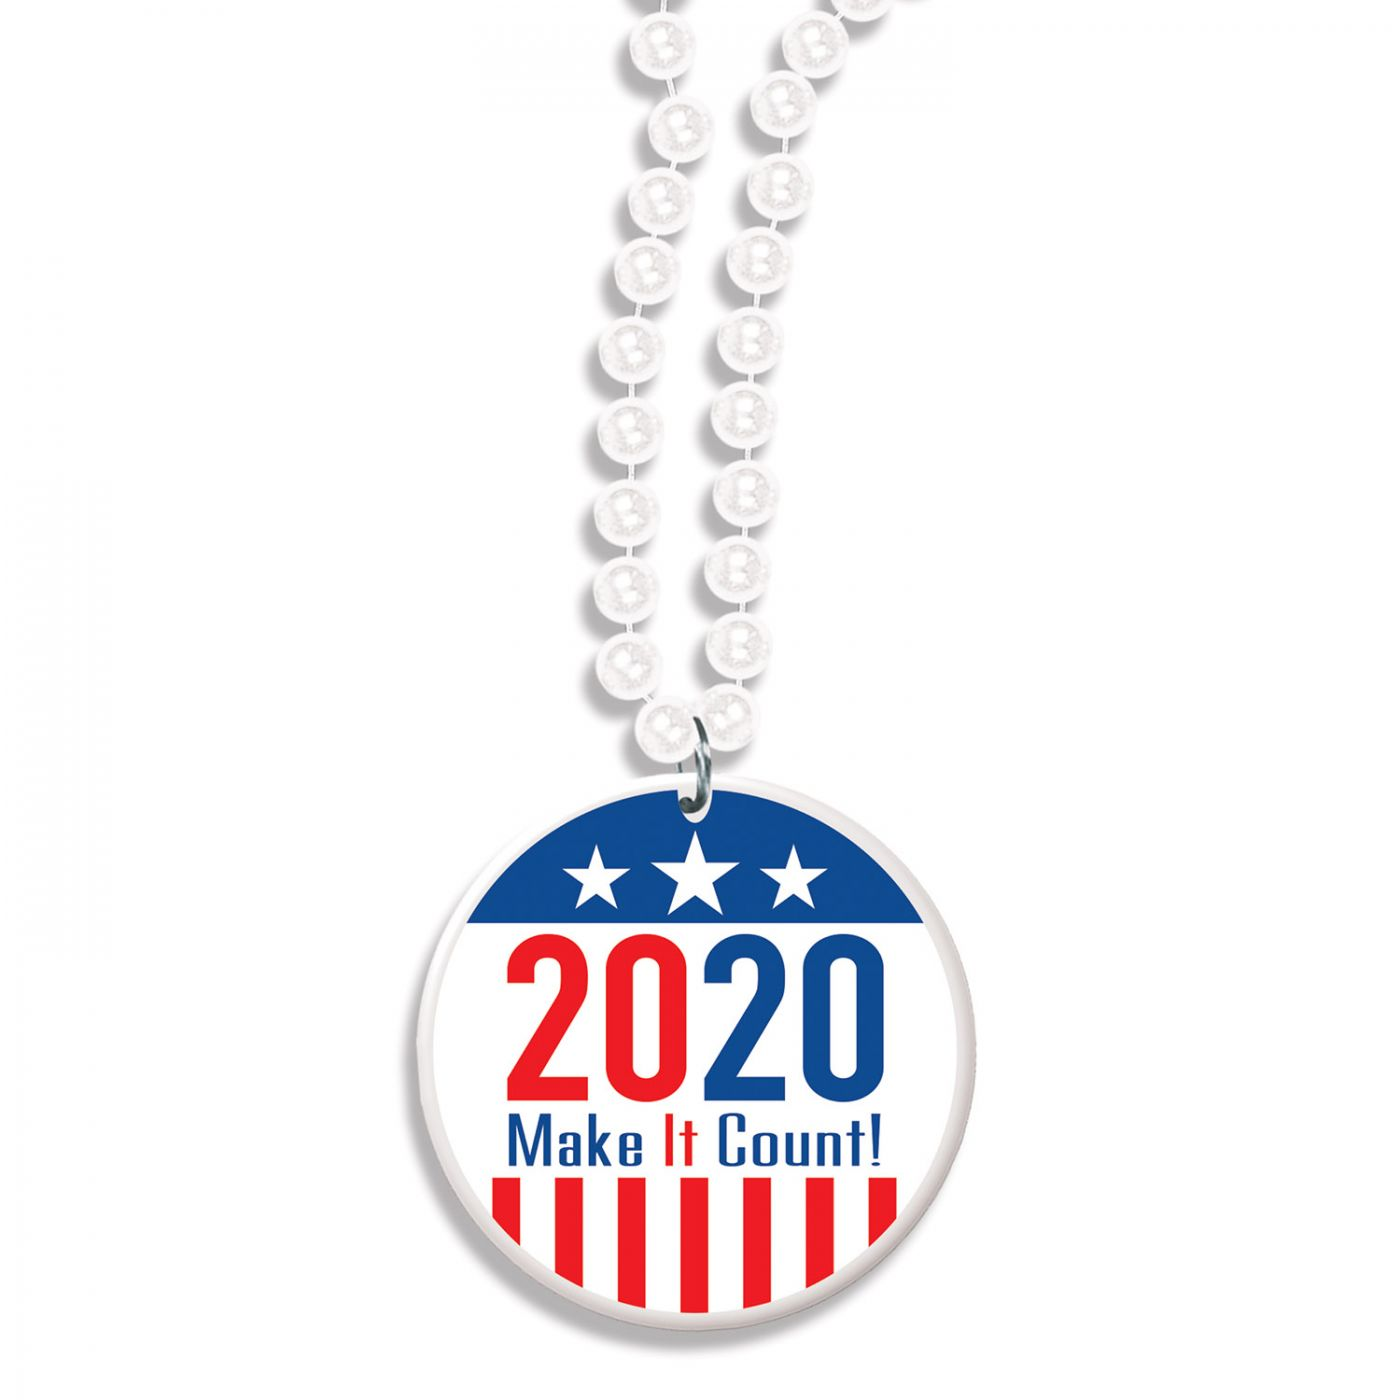 Image of Beads w/ 2020  Make It Count! Medallion